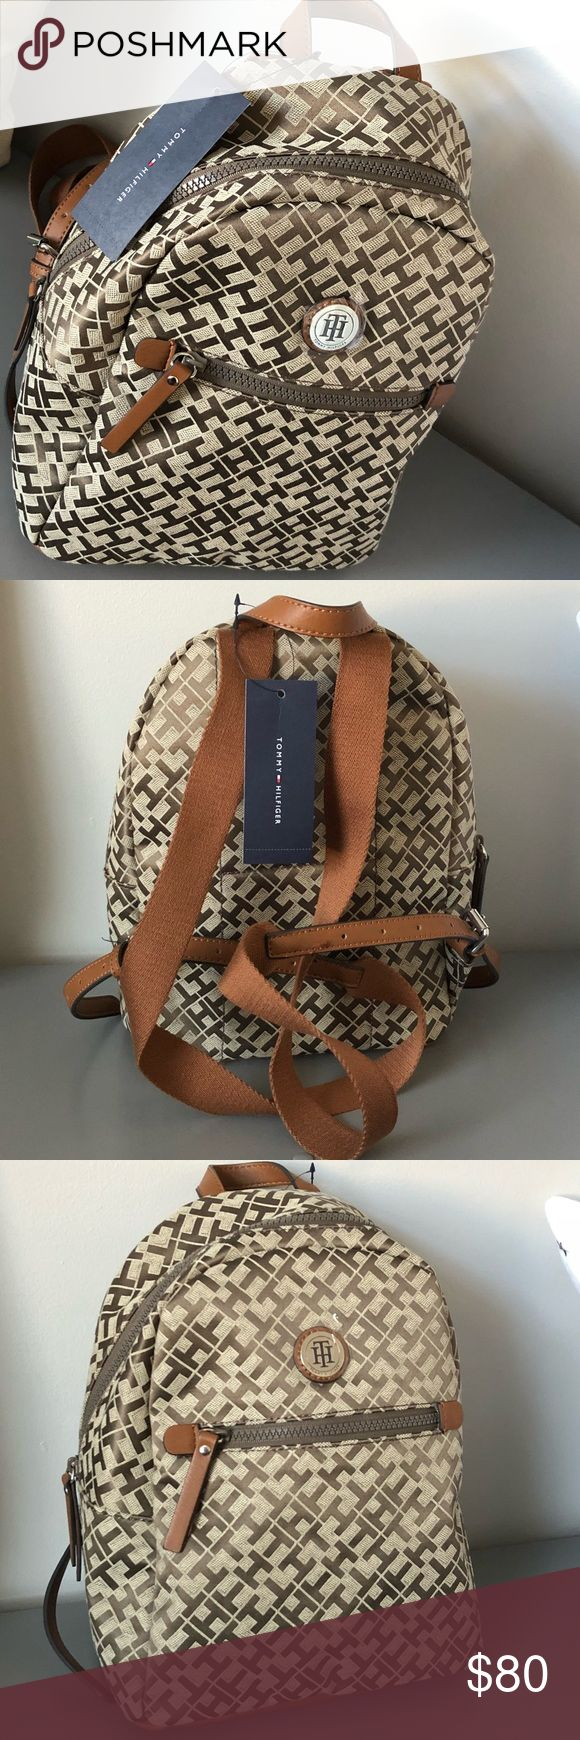 ‼️ NWT Tommy Hilfiger Backpack Brand new never used Tommy Hilfiger backpack Beautiful medium sized bag! Brown and tan! Tommy Hilfiger Bags Backpacks